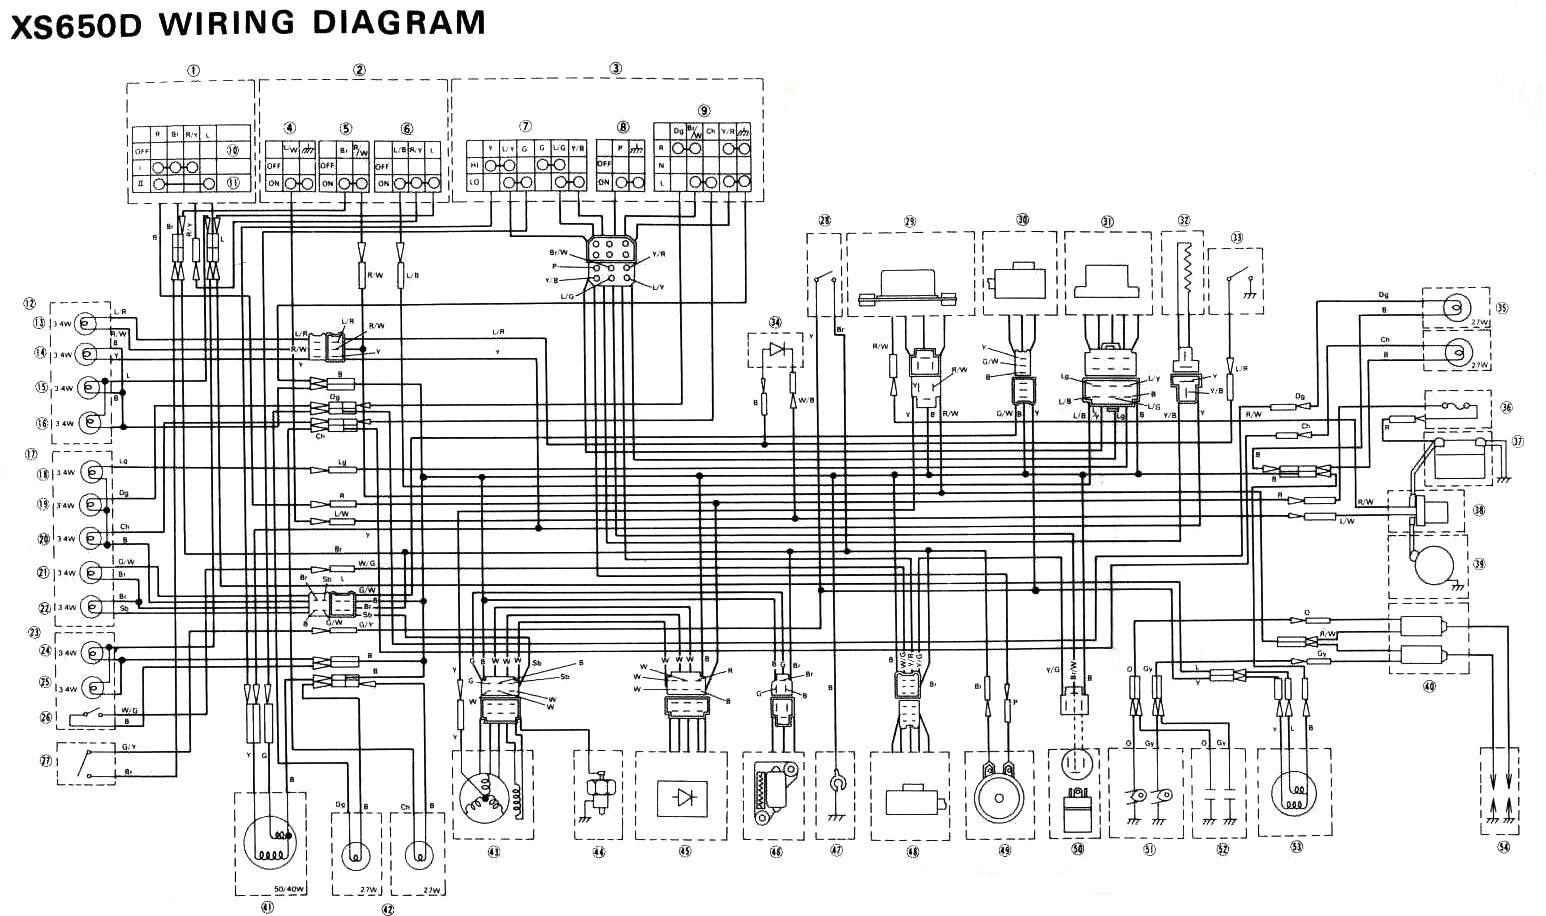 77XS650 wiring diagrams 1983 yamaha xs650 wiring diagram at bakdesigns.co